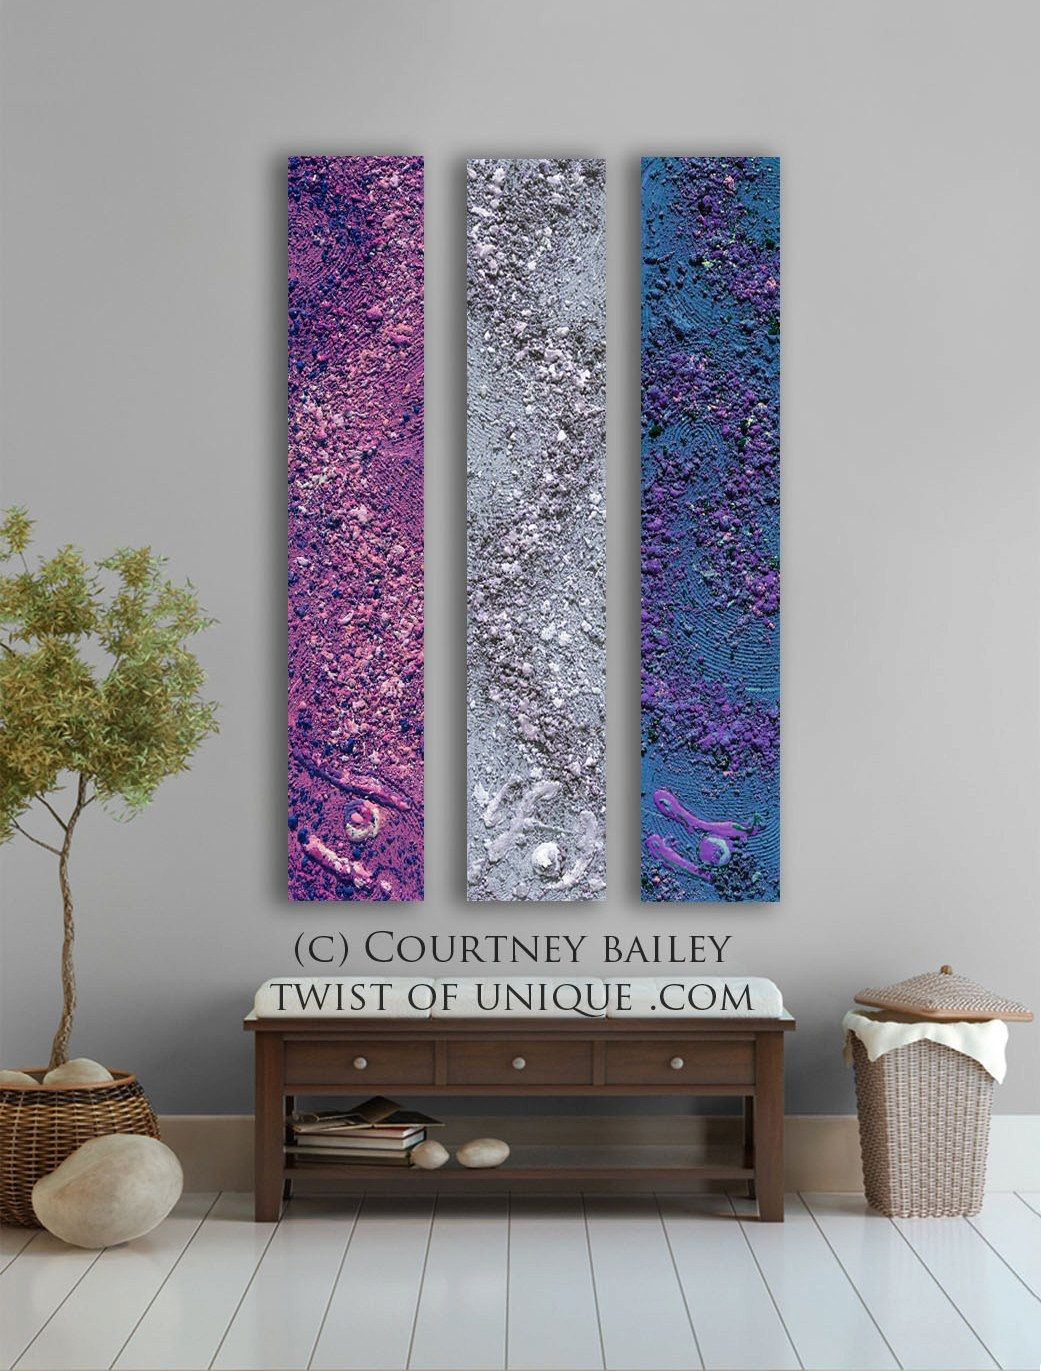 Huge Abstract Painting 3 Panel Custom Absract Wall Art Large Modern Abstract Artwork Turquoise Orang Custom Wall Art Abstract Wall Art Industrial Wall Art